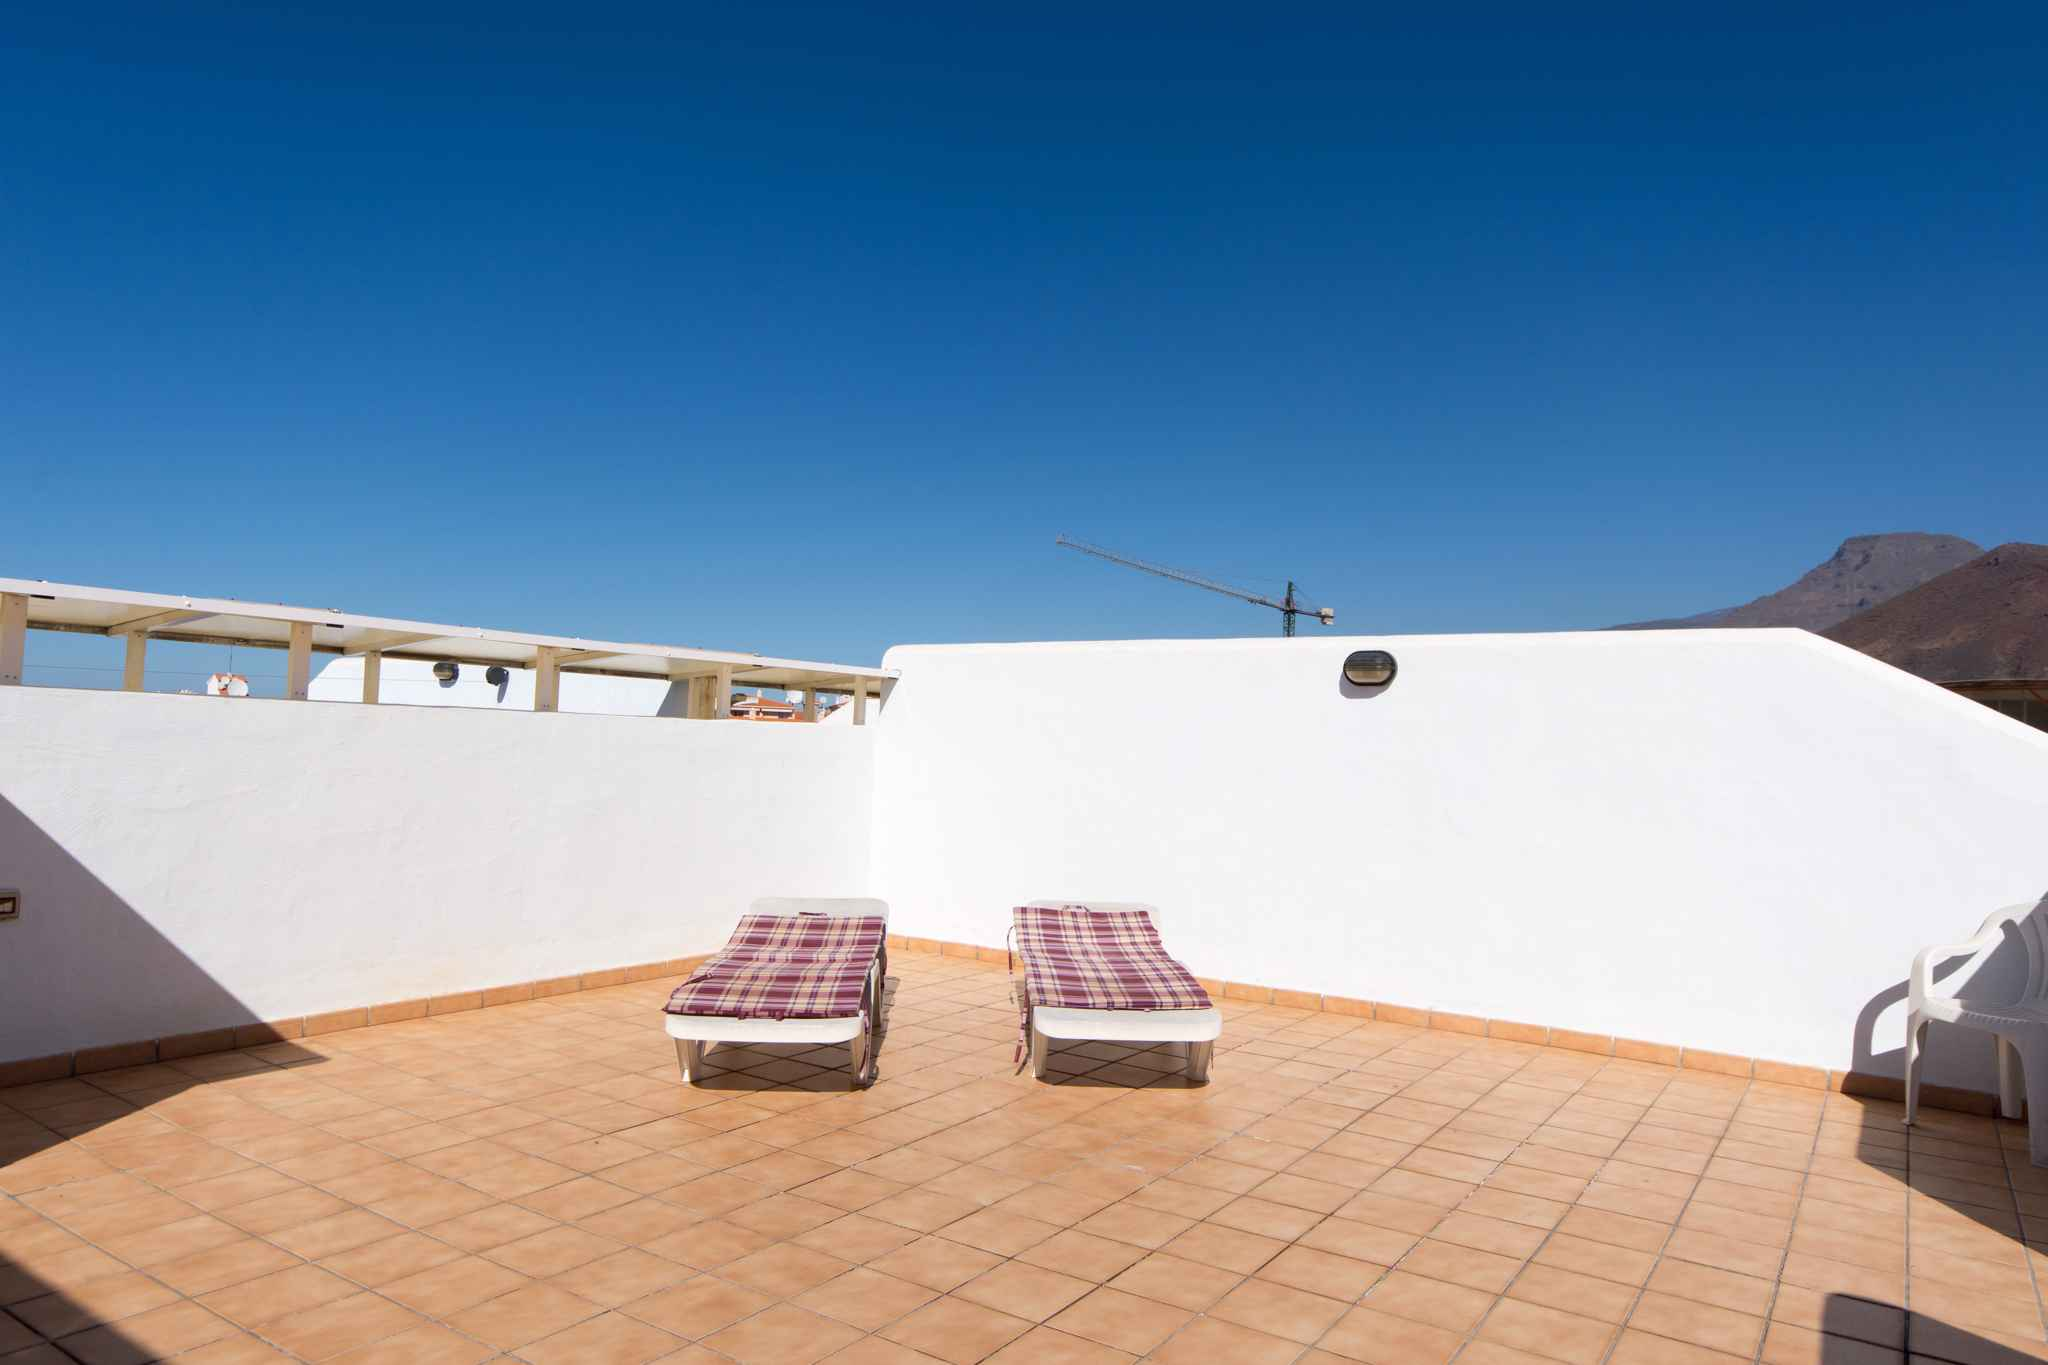 Holiday apartment mit Pool in Ferienanlage (2382979), Los Cristianos, Tenerife, Canary Islands, Spain, picture 16